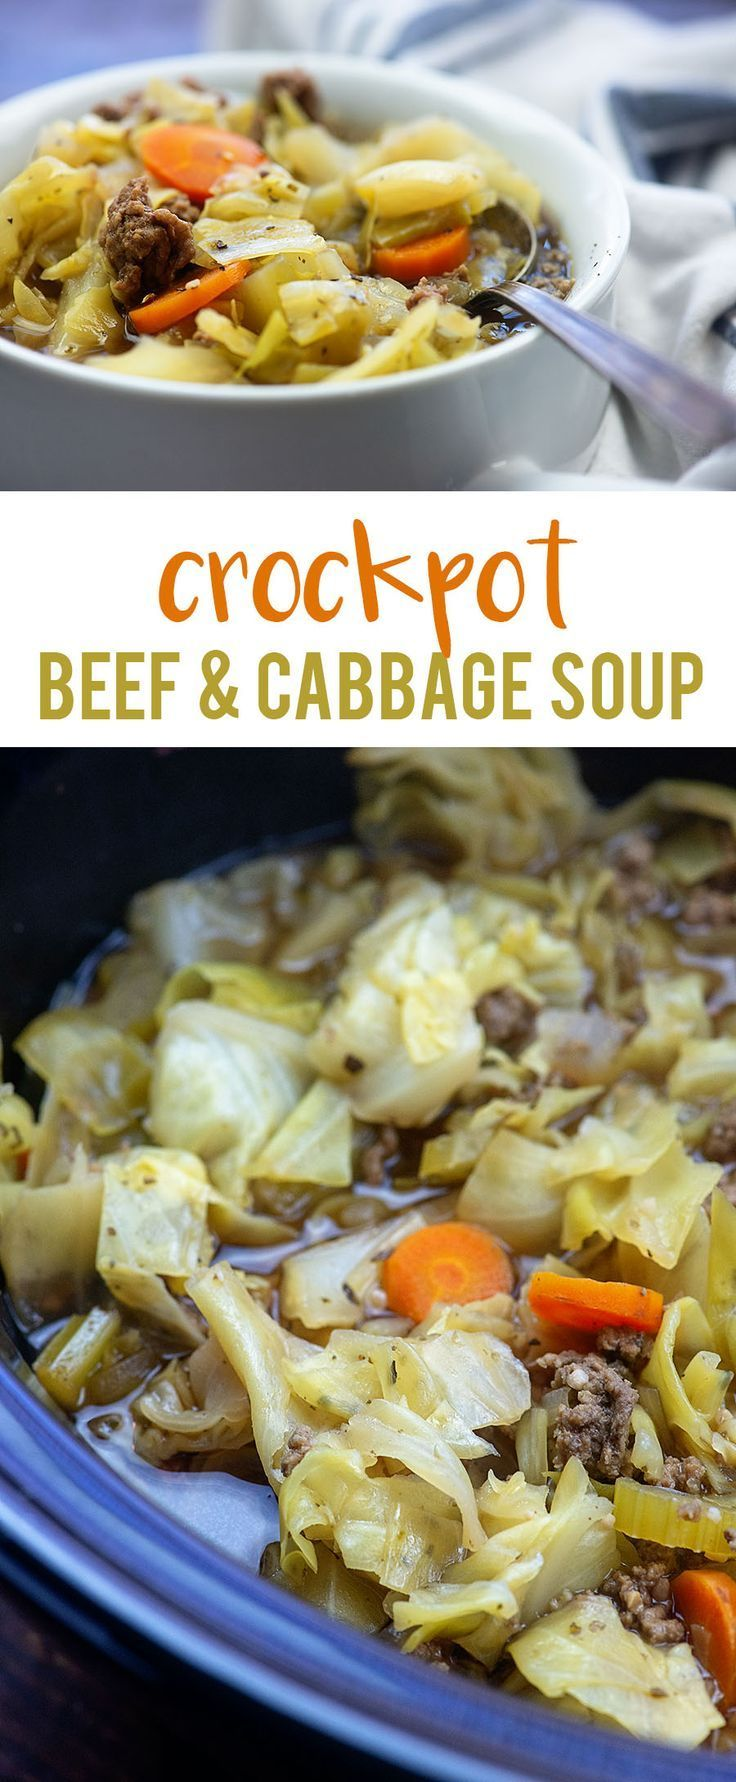 Crockpot Cabbage Soup With Beef Recipe Cabbage Soup